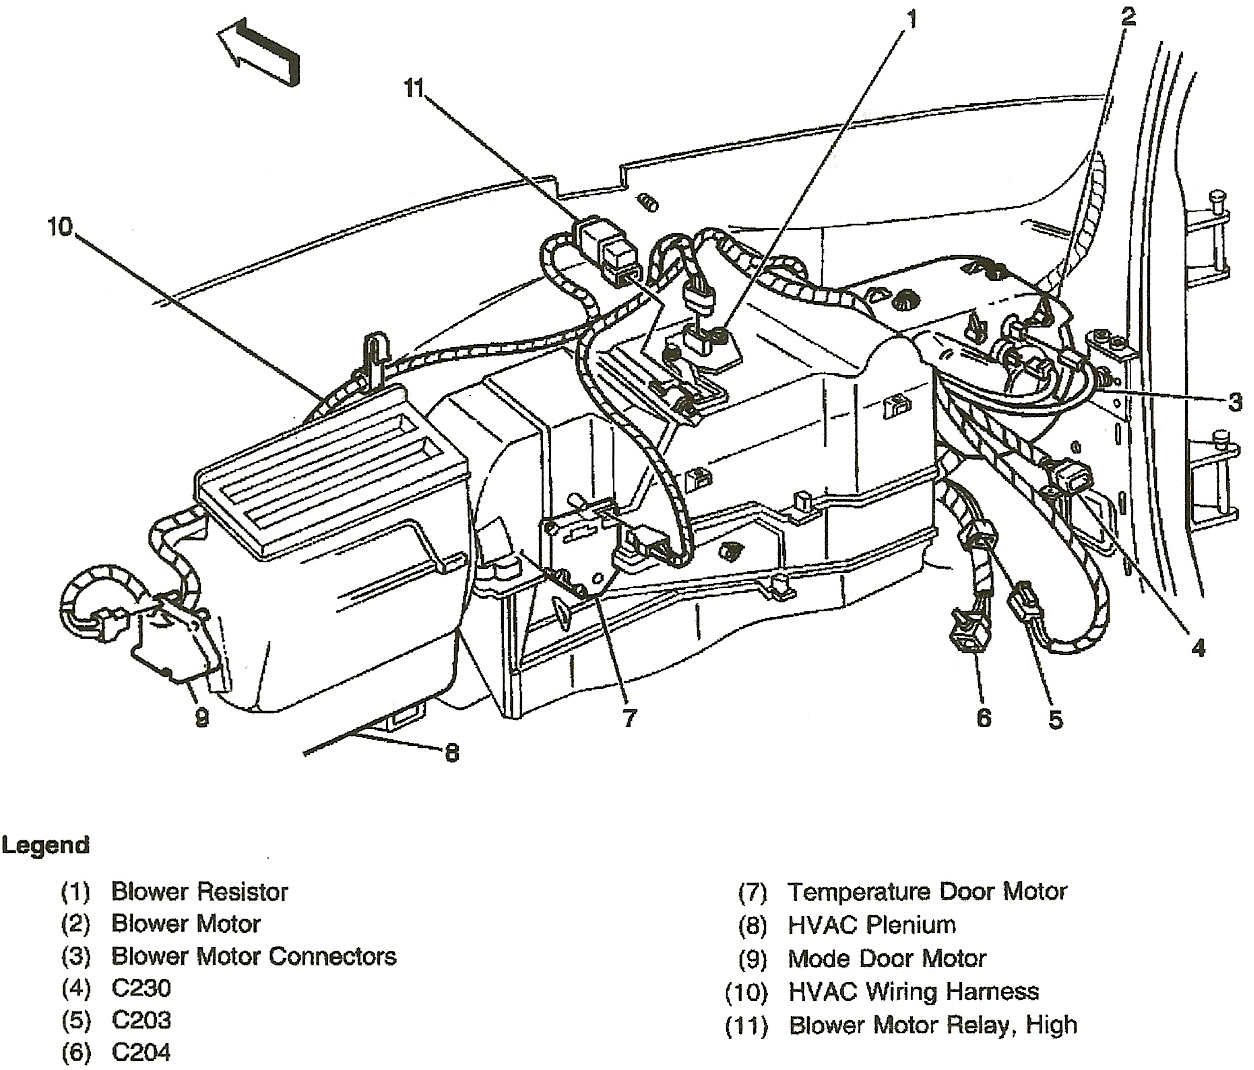 hight resolution of how to test a chevy suburban blower motor my pro street emerson blower motor wiring diagram 07 suburban blower motor wiring diagram